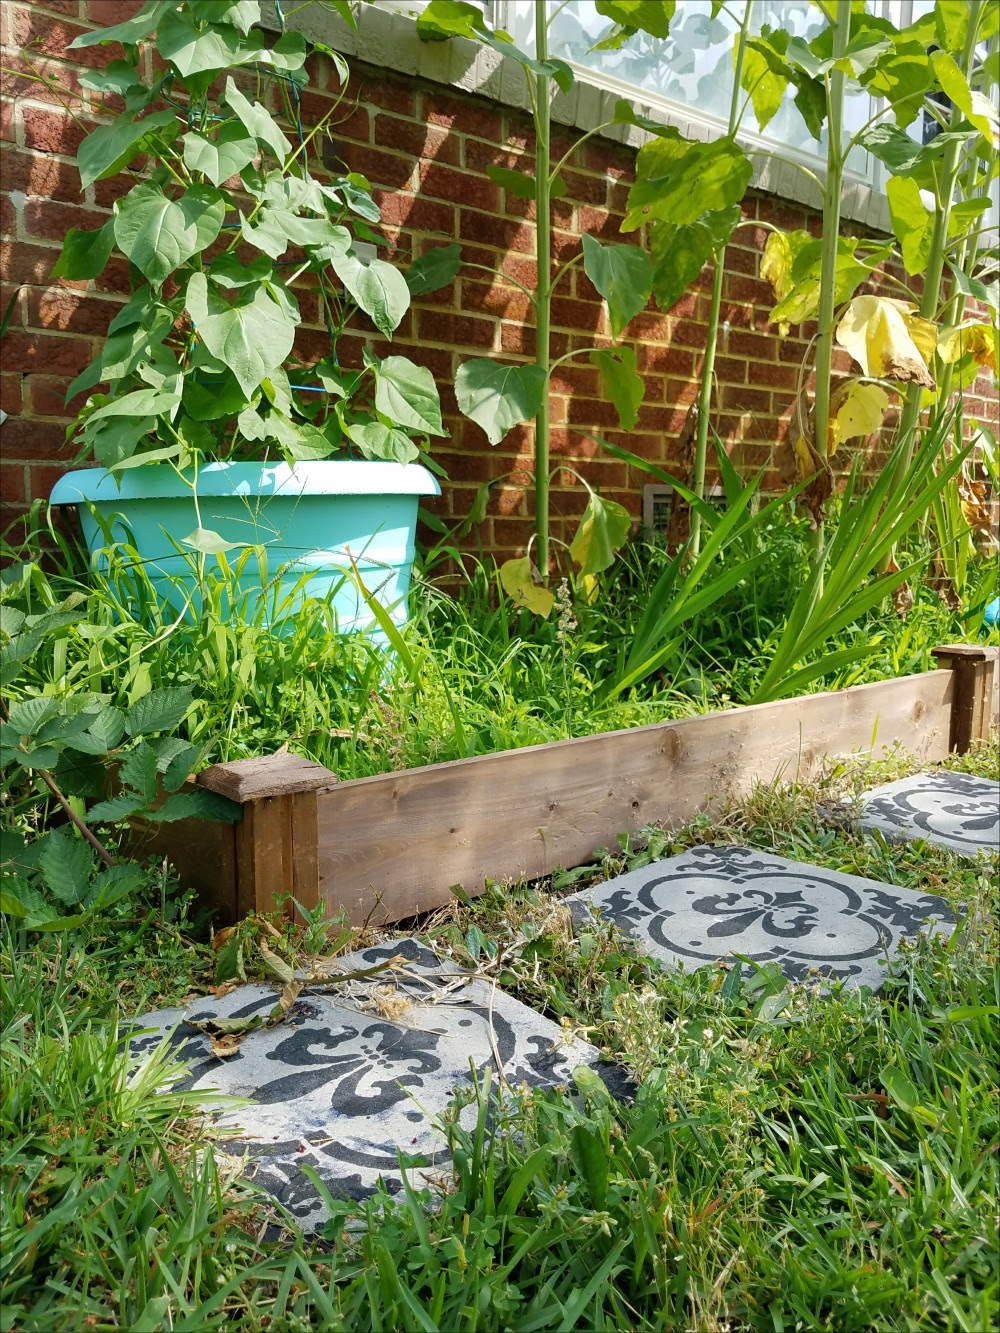 Encaustic tile look alike yard pavers and customized raised garden bed kit. Aqua yard details - @adesignerathome